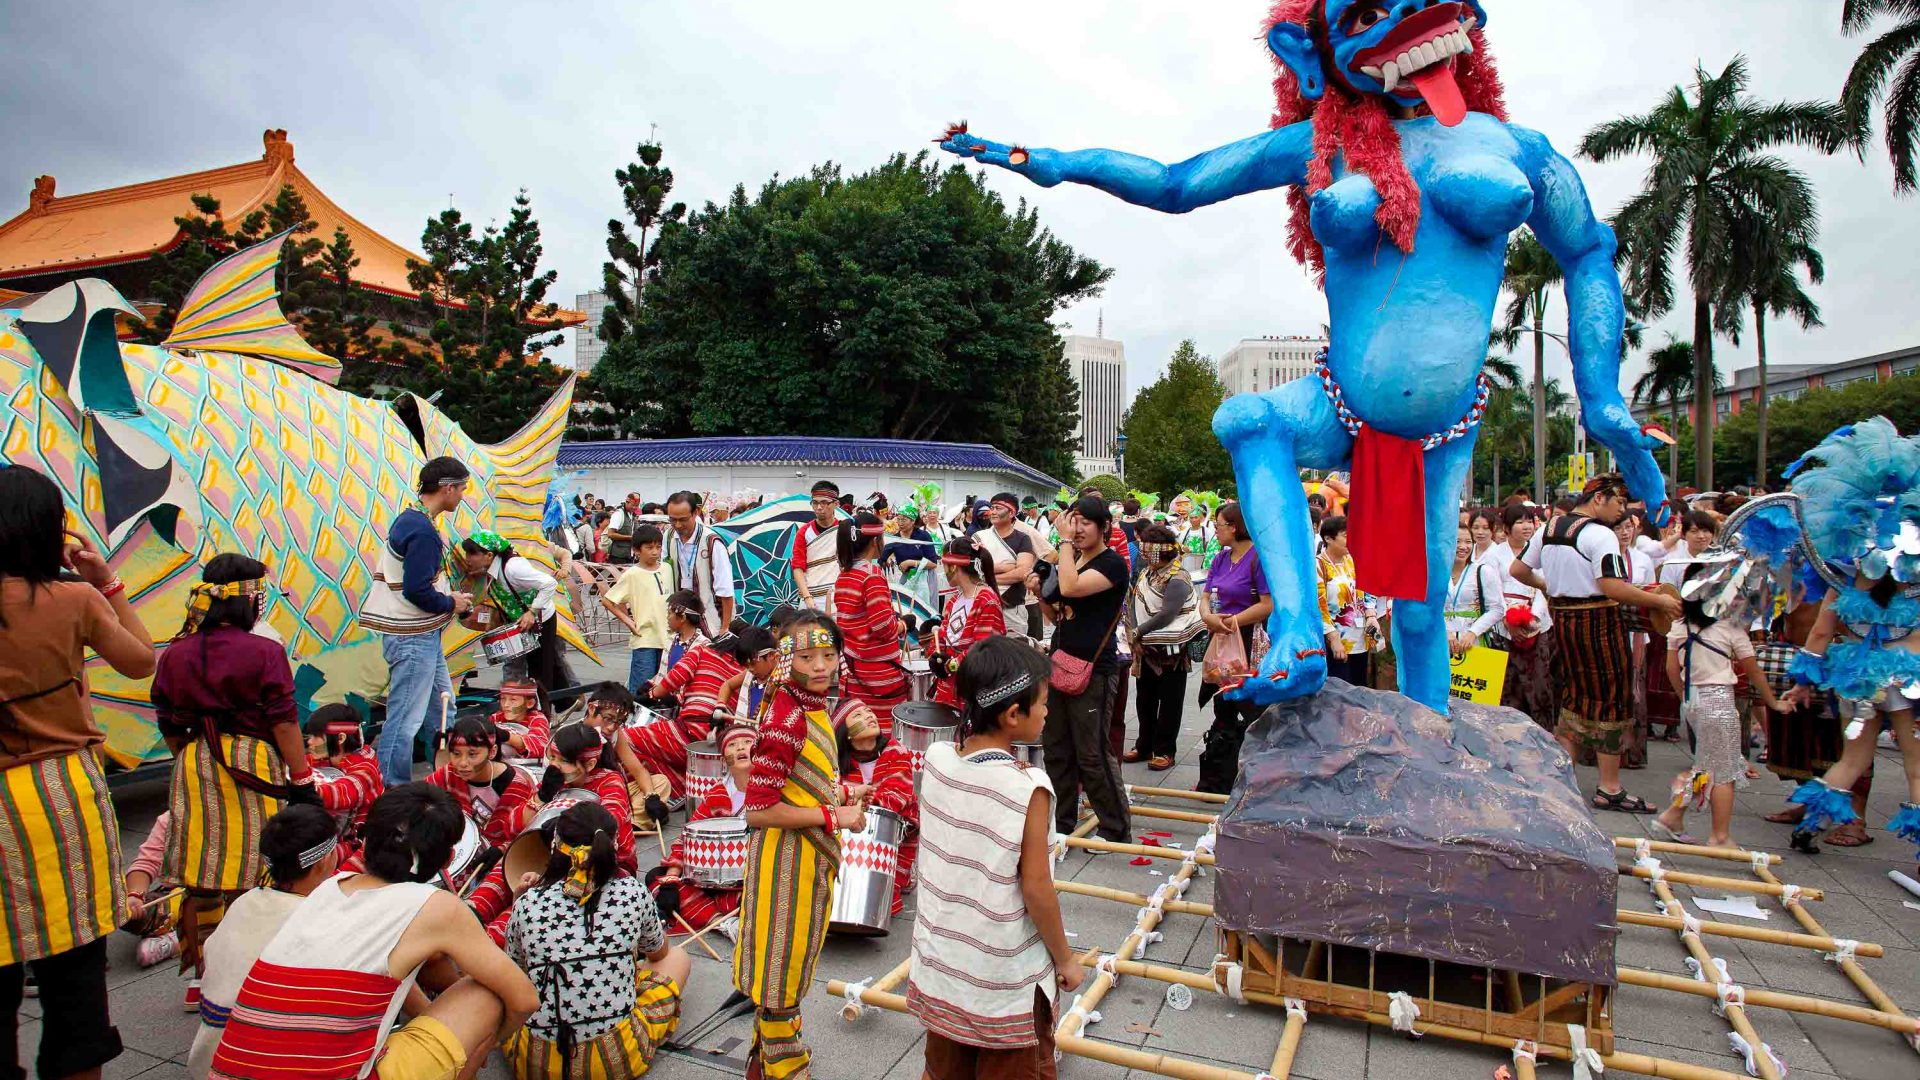 Papier-mâché floats have been known to be as high as three-storey buildings at Taipei's Dream Parade.